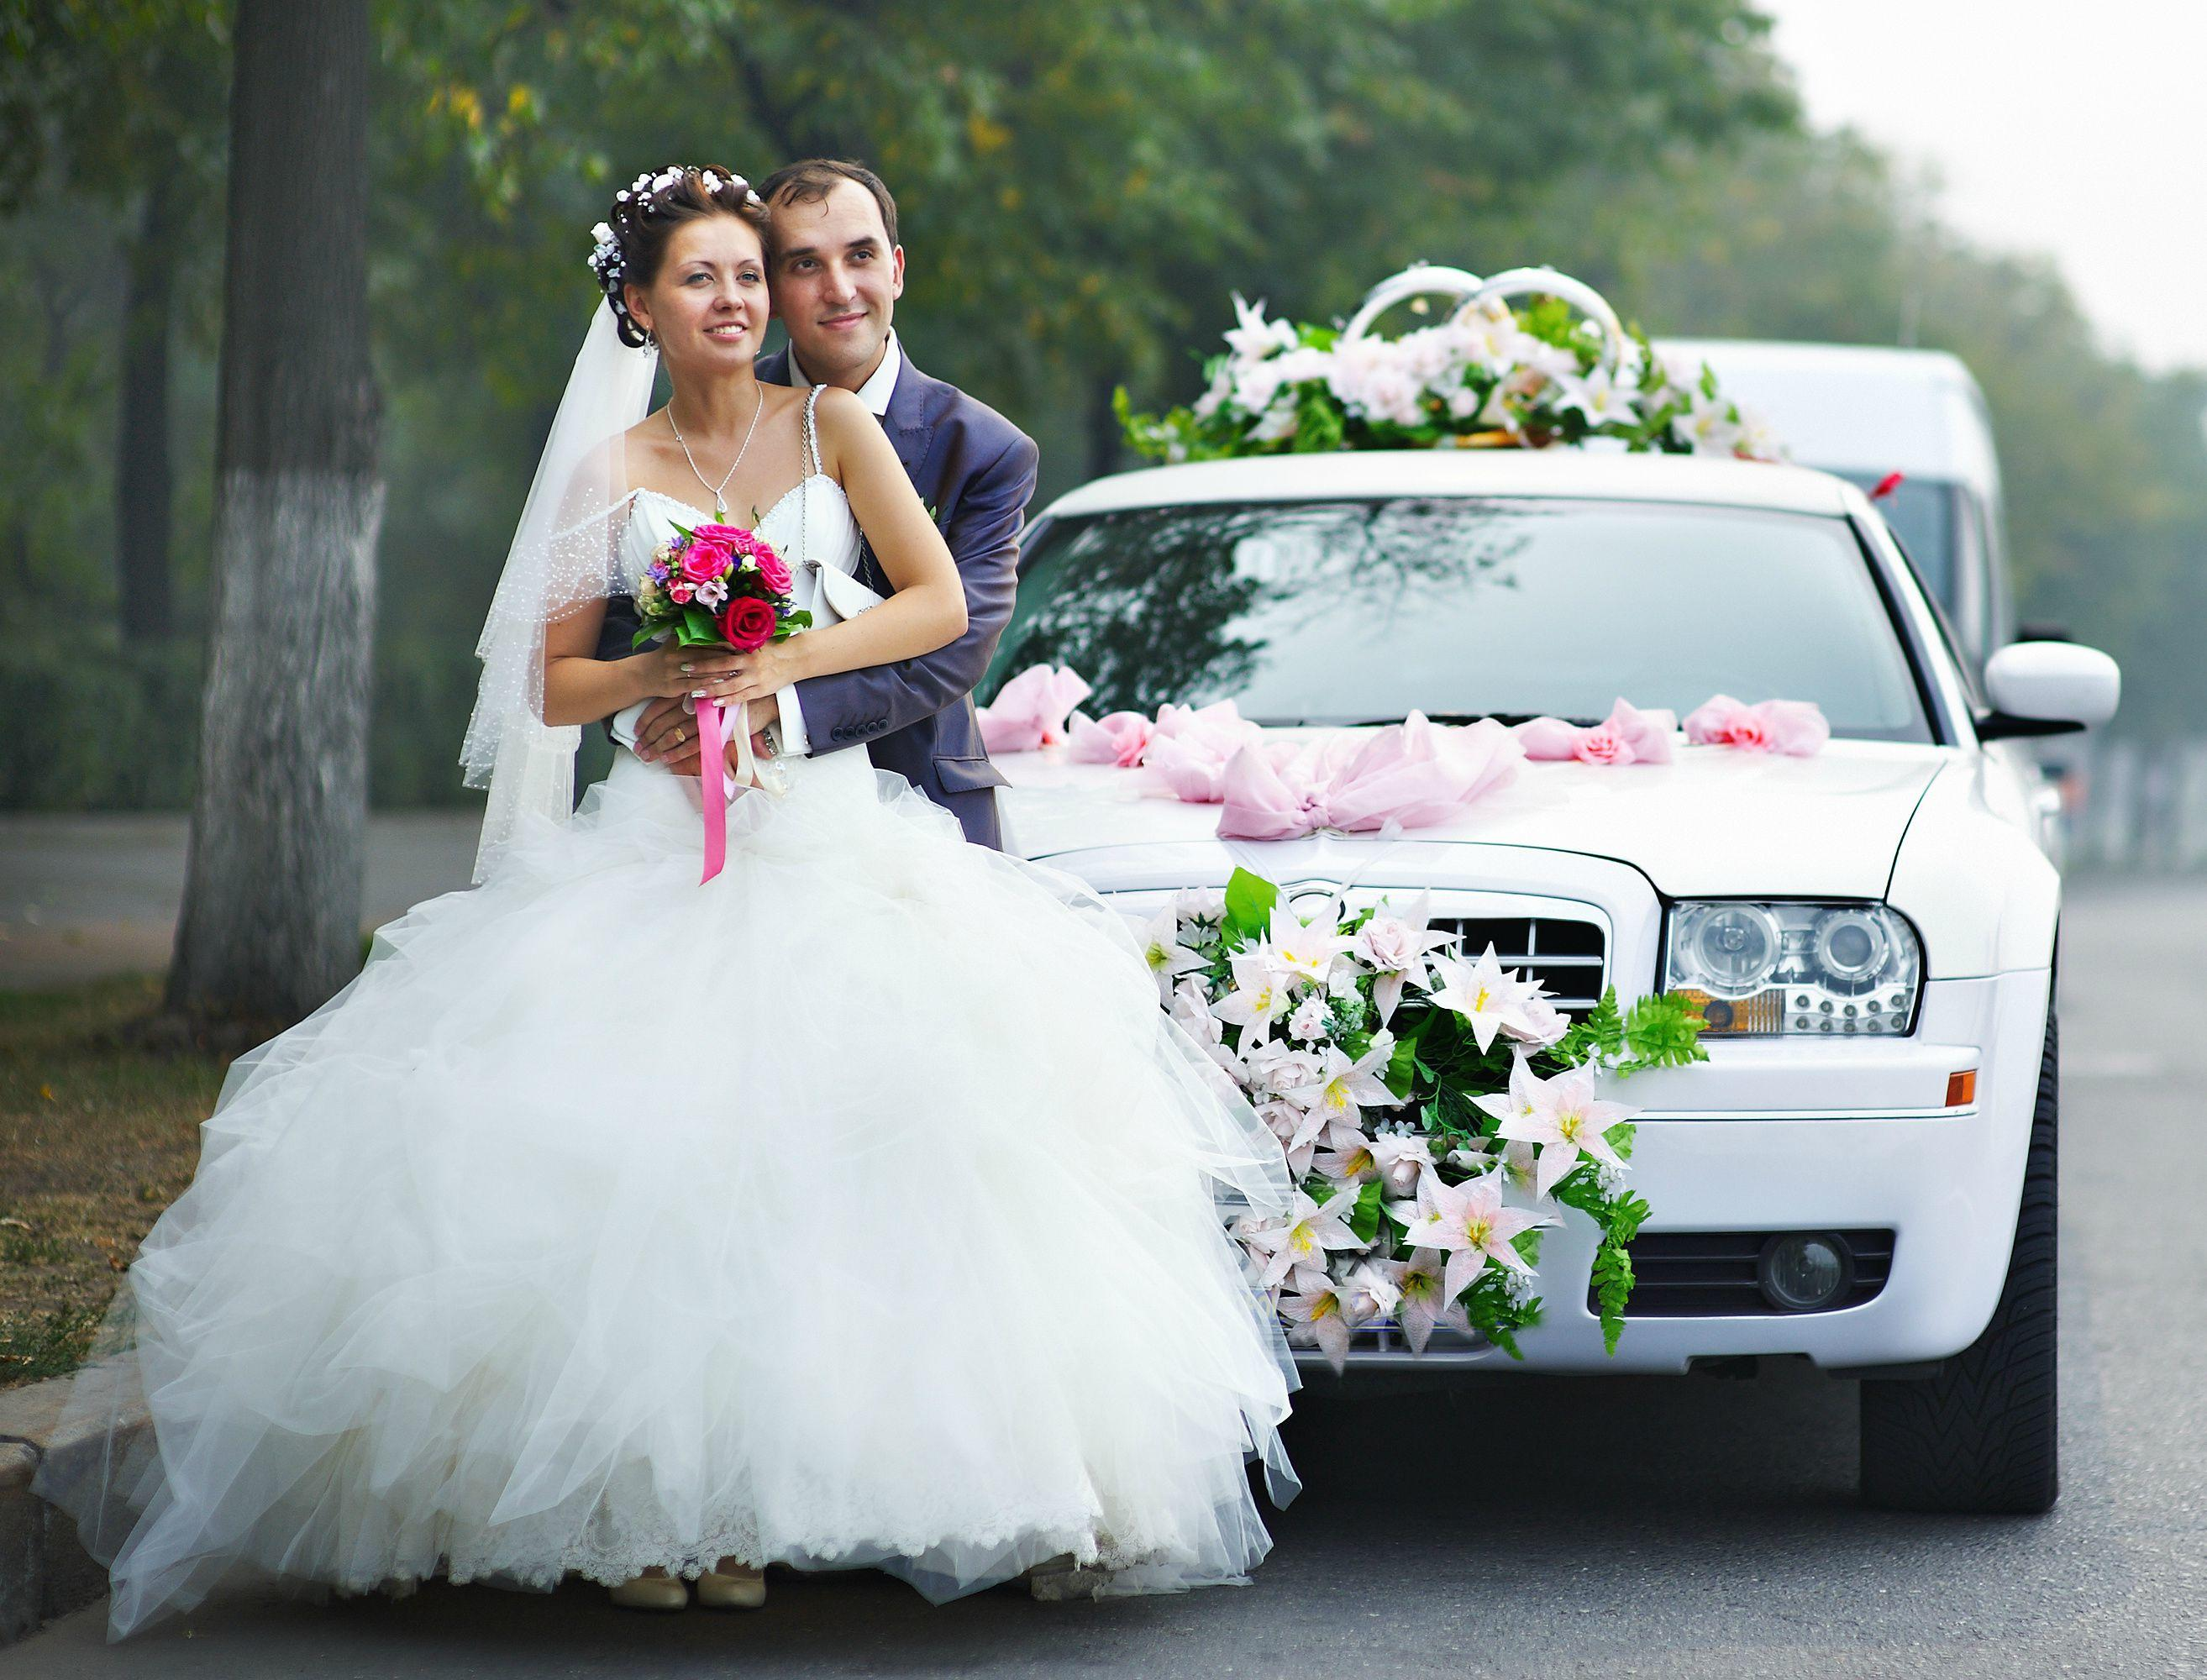 Wedding Limo Event Rental Service DFW Dallas Fort Worth